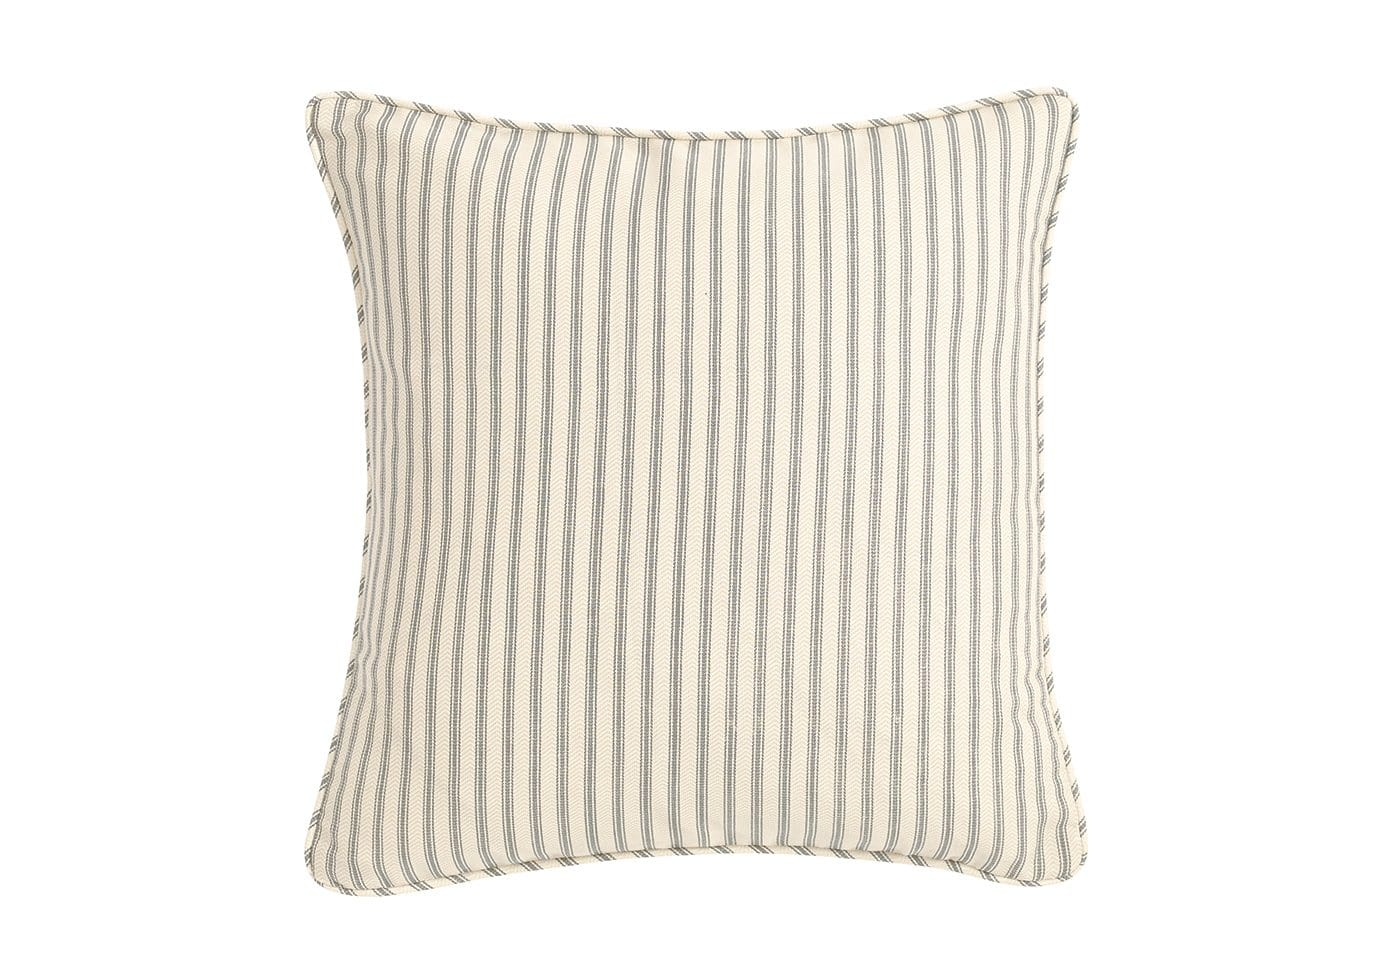 Ticking Stripe 18 Inch Square Pillow Cover